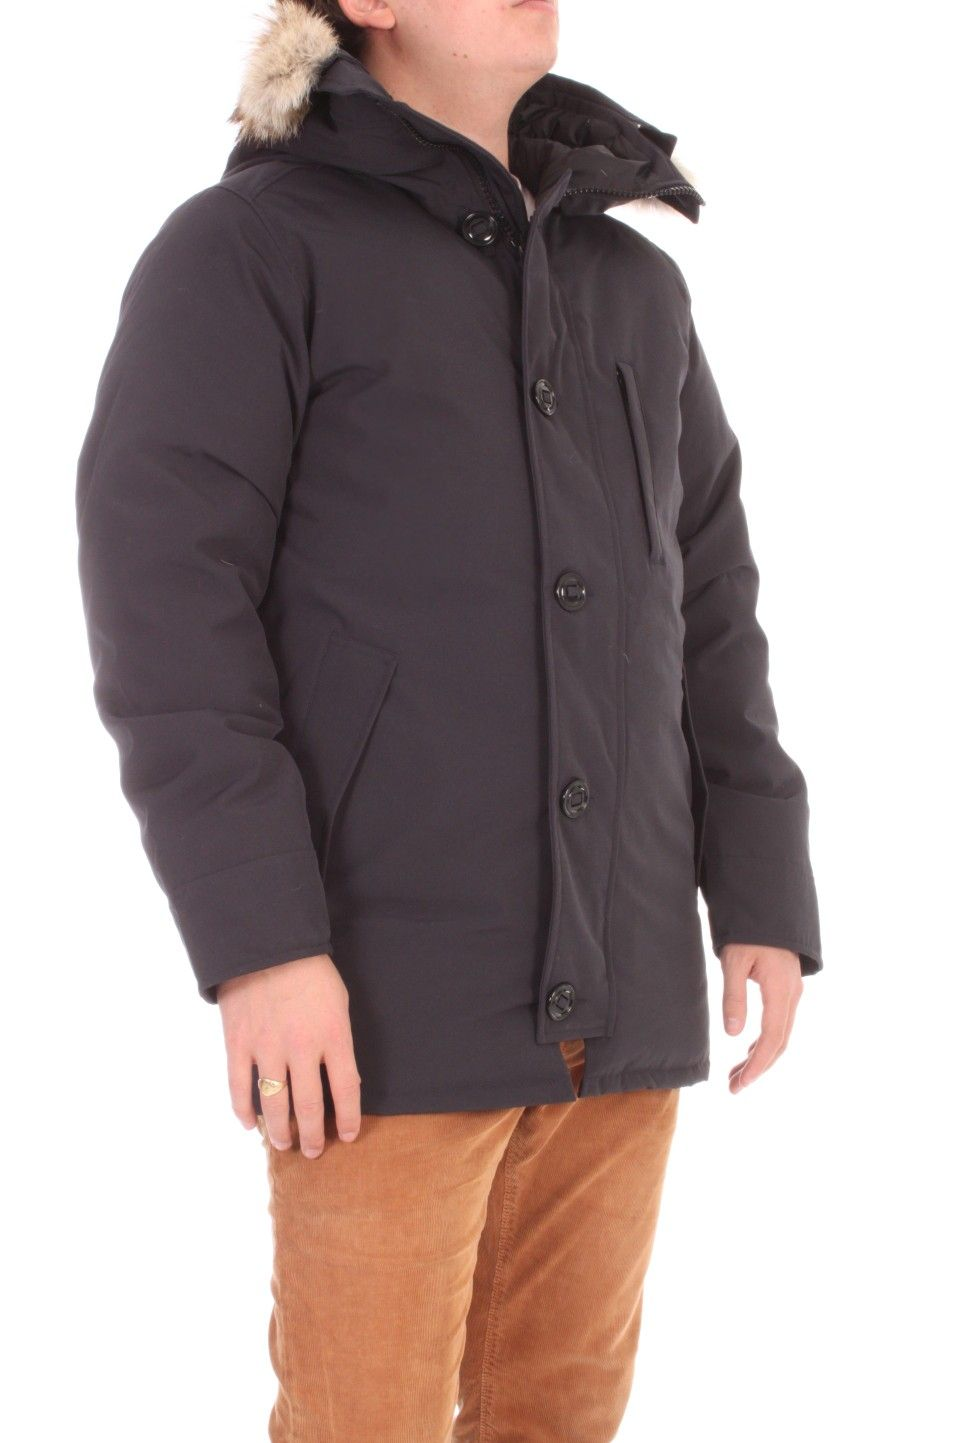 Canada Goose The Chateau Jacket 3426MR61 - MAN Bloom Fashion